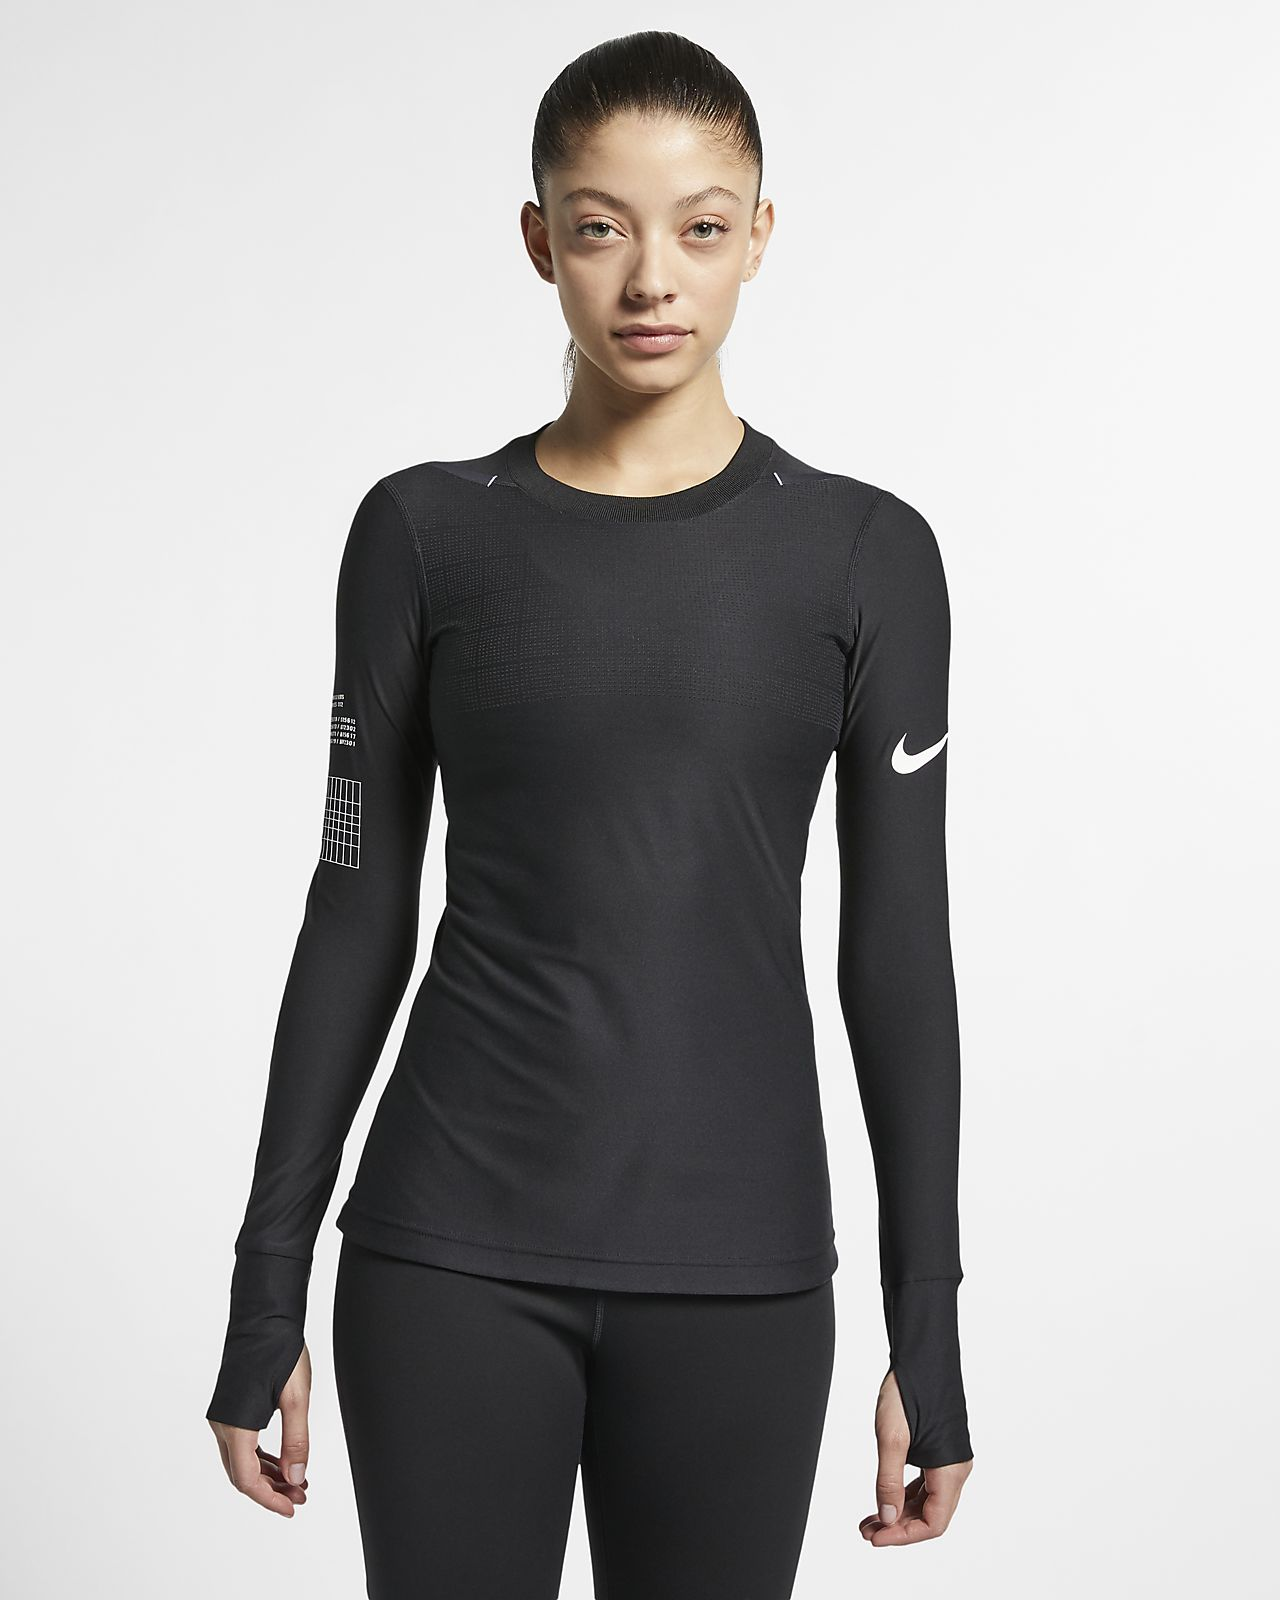 Nike x MMW Women's Long-Sleeve Top